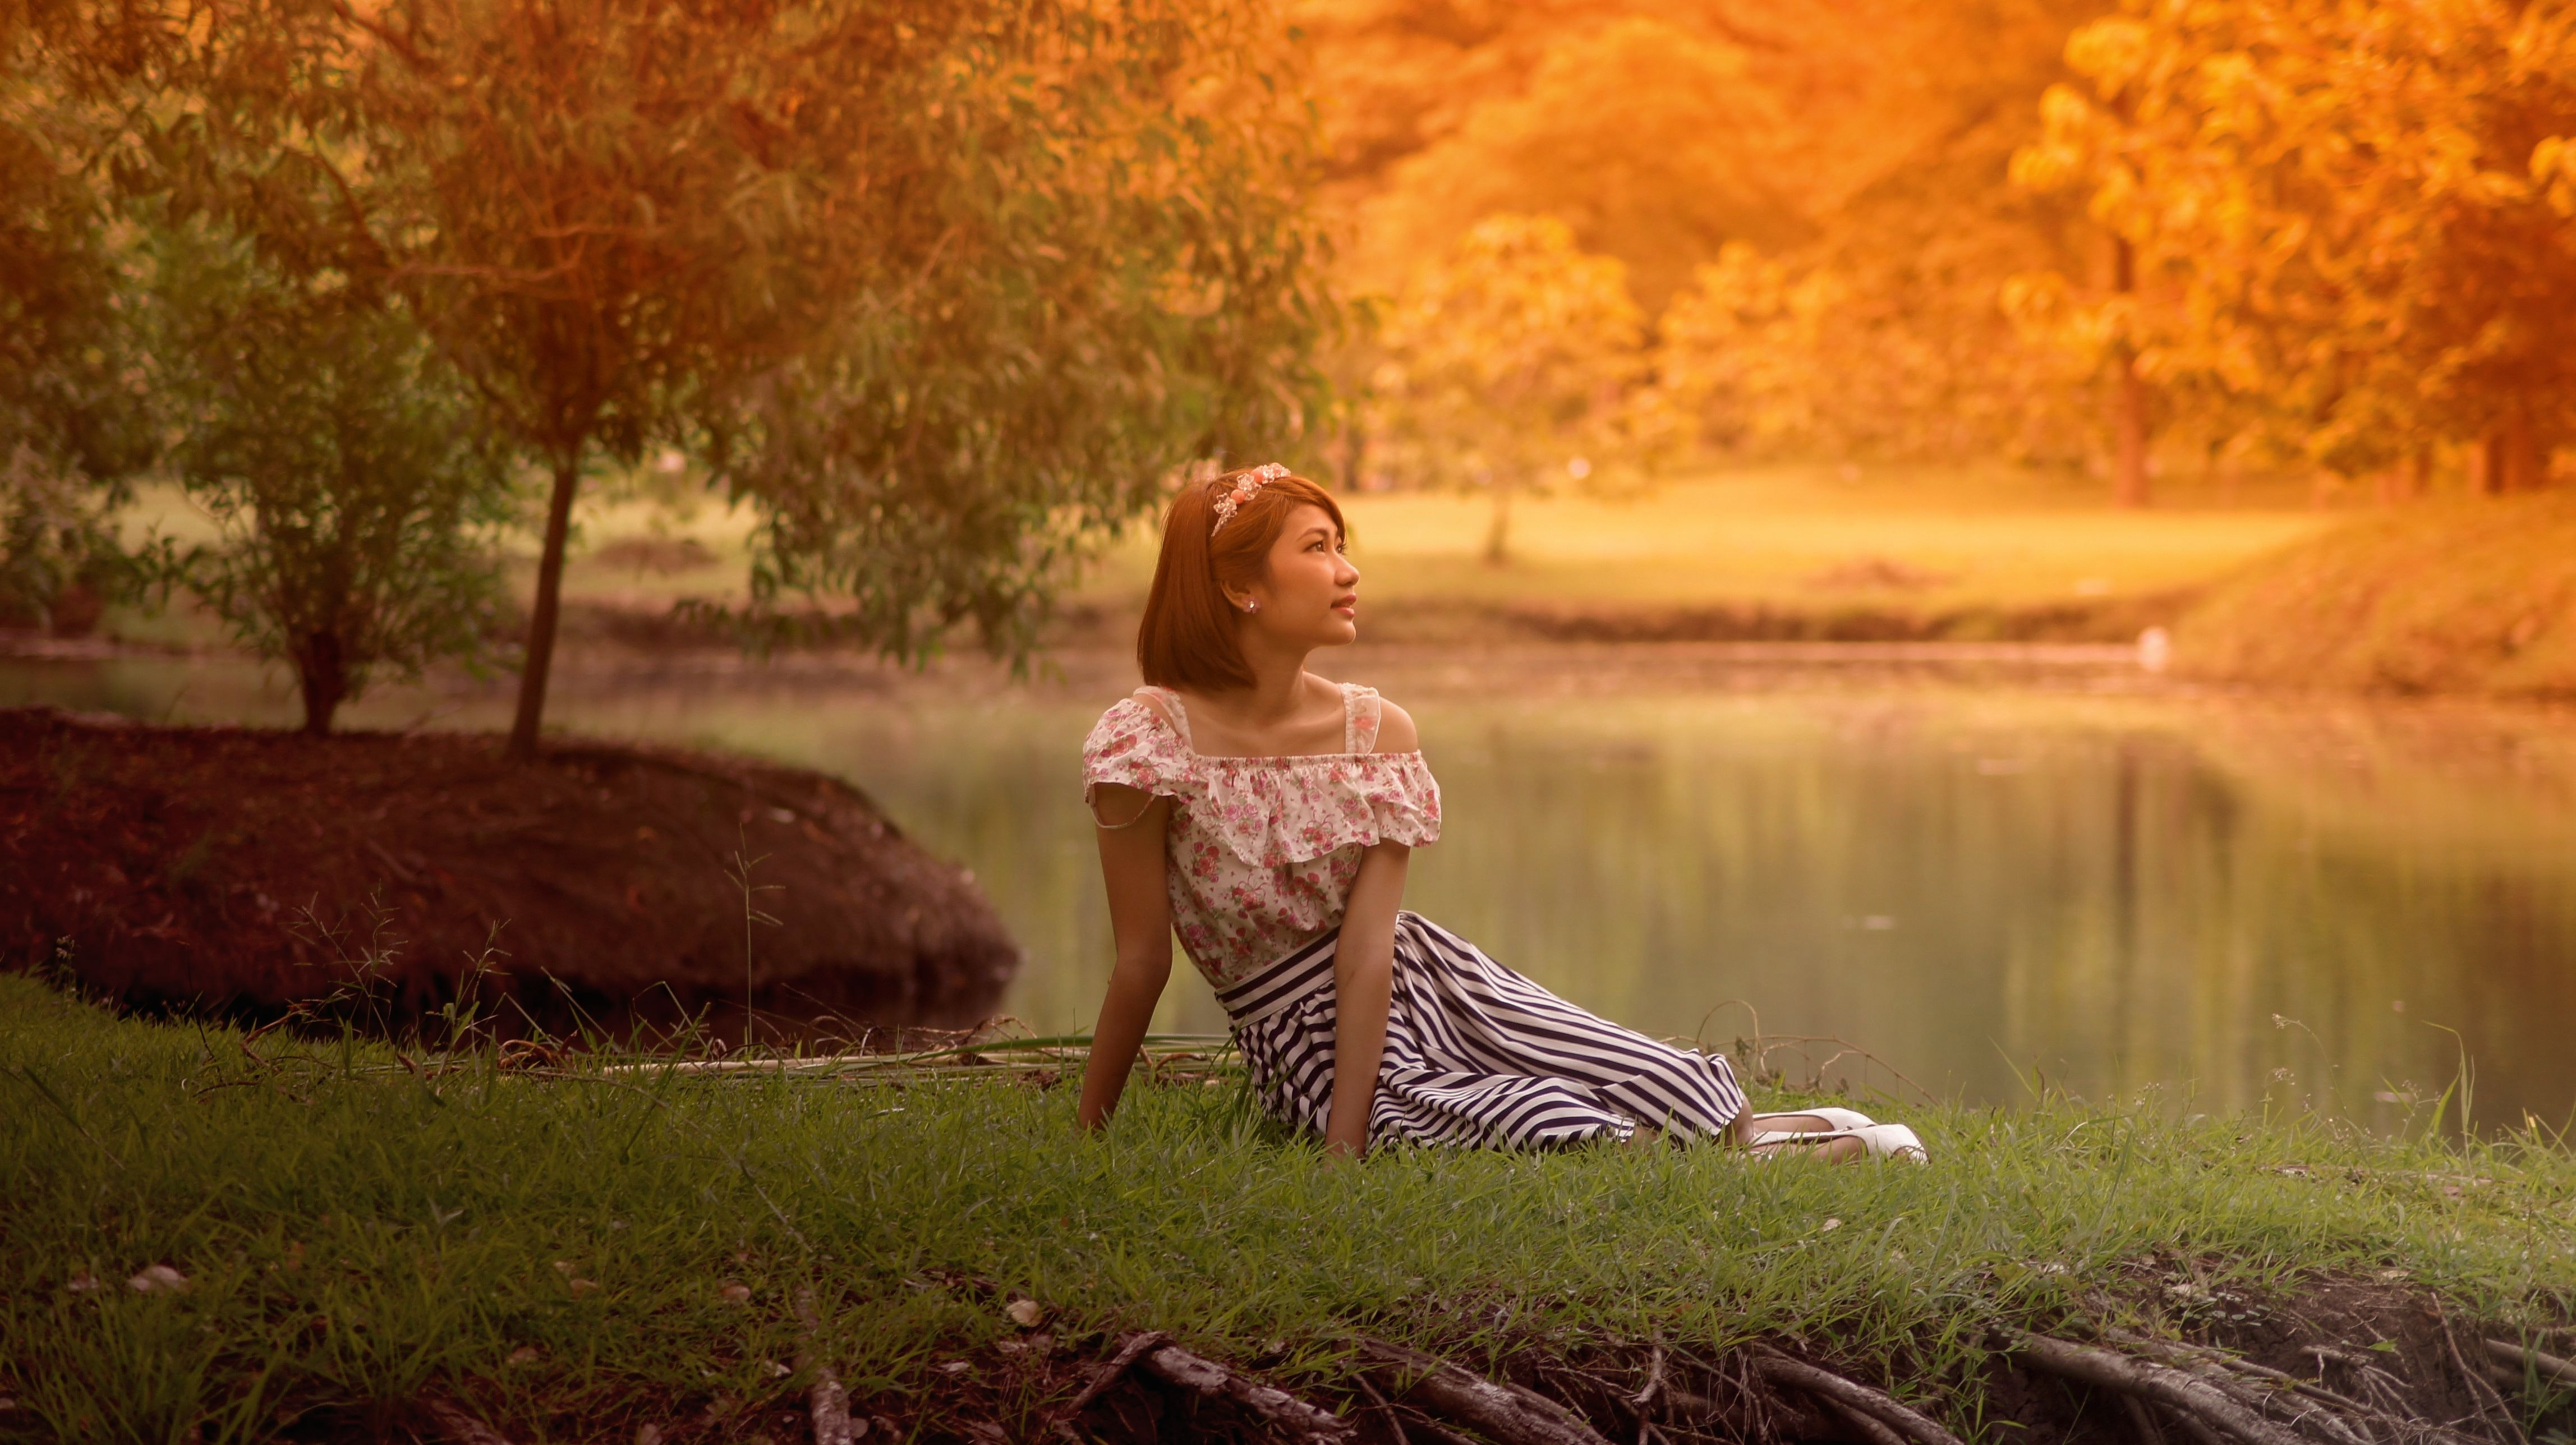 Woman in Dress Lying on Grass, Pond, Young, Woman, Wear, HQ Photo